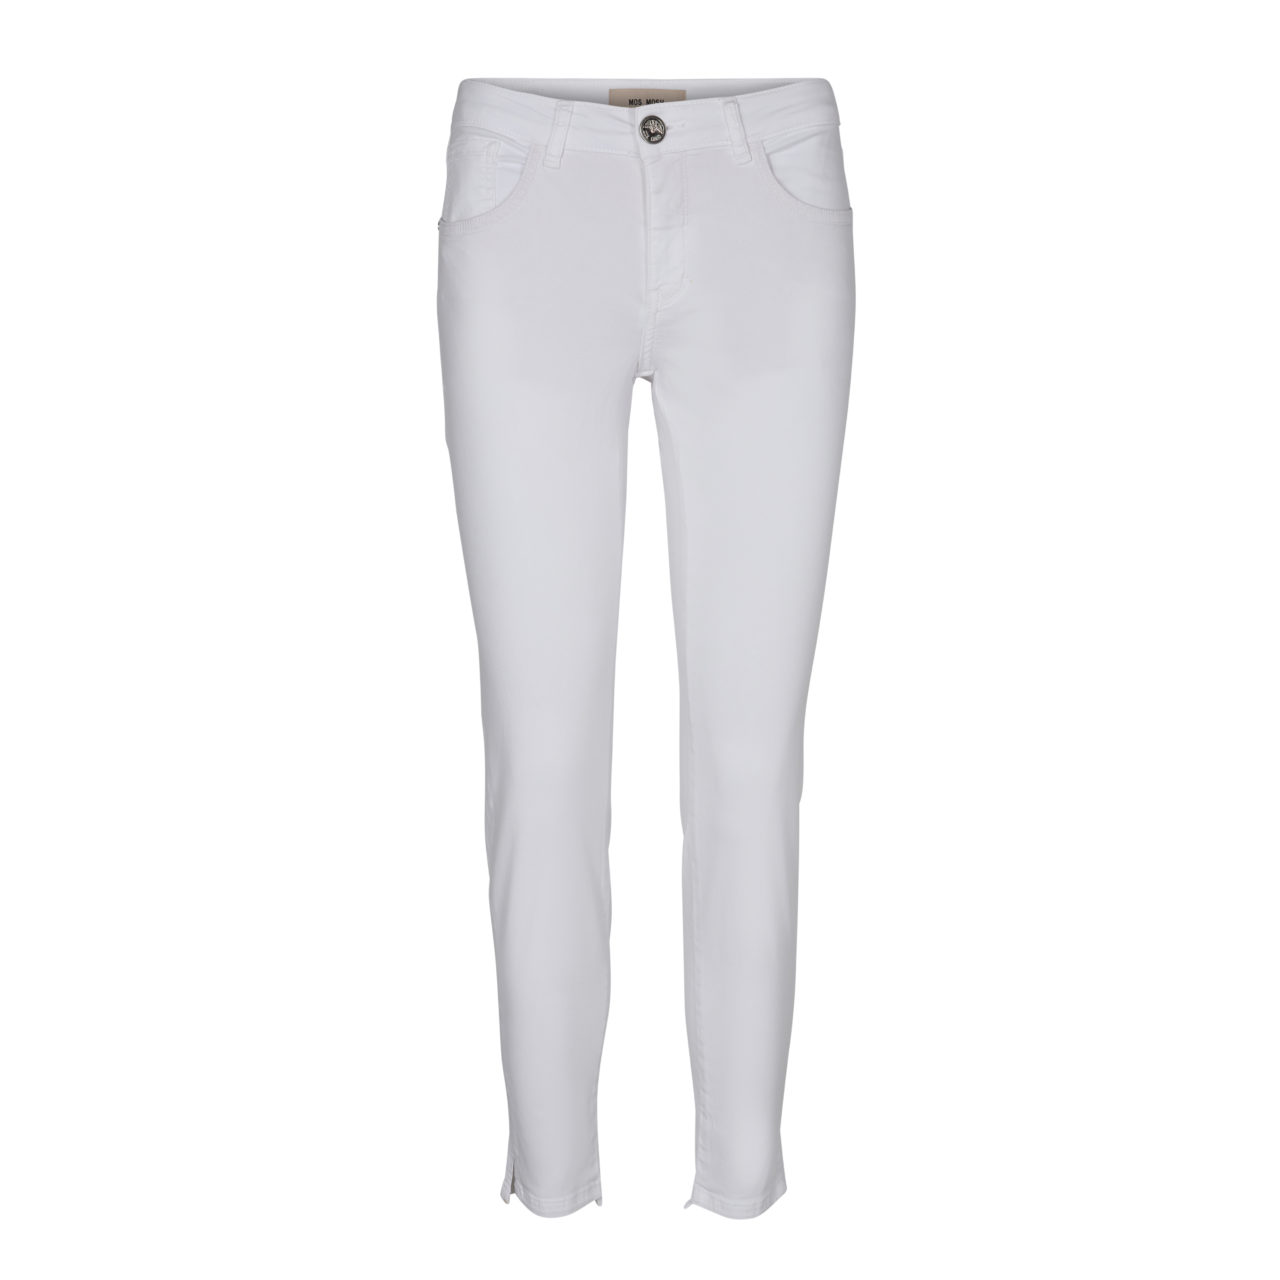 Mosmosh Sumner Air Step Pant White Weiß Hose (1)